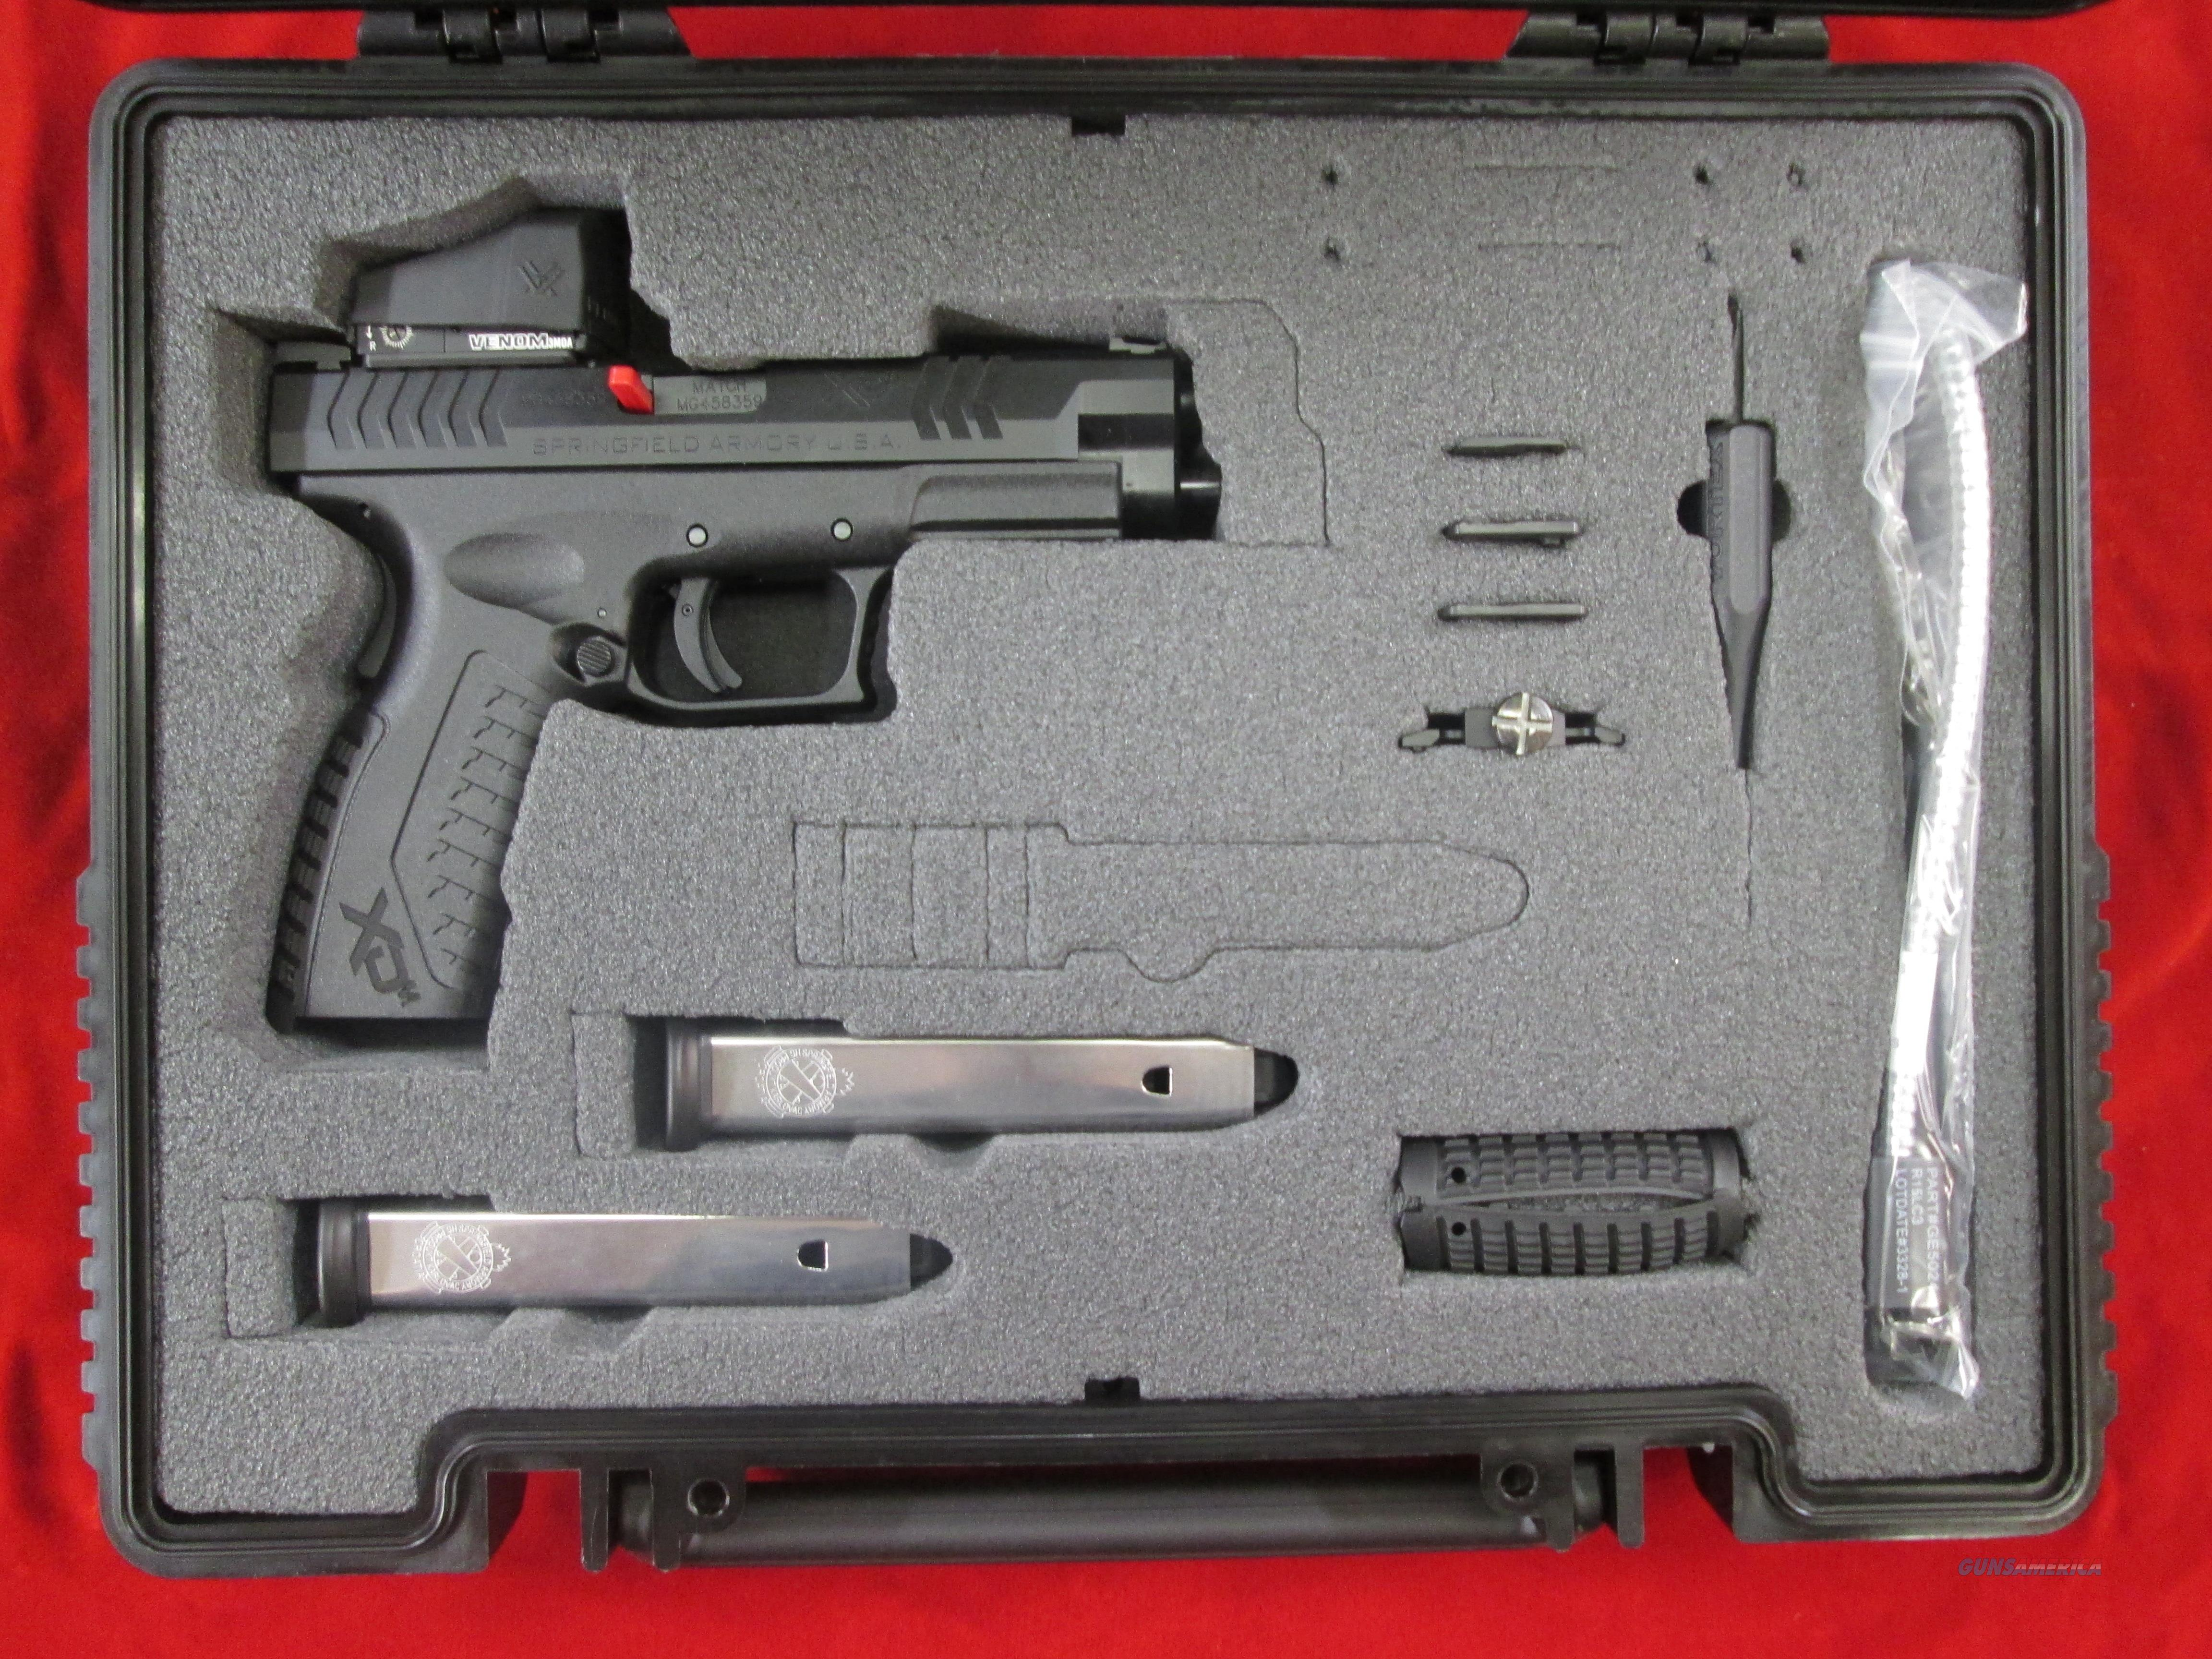 "SPRINGFIELD ARMORY XDM 9MM 4.5"" OPTICS READY W/ MOUNTED VORTEX VENOM SIGHT NEW   {{ FACTORY MAIL IN REBATE OFFER }}    Guns > Pistols > Springfield Armory Pistols > XD-M"